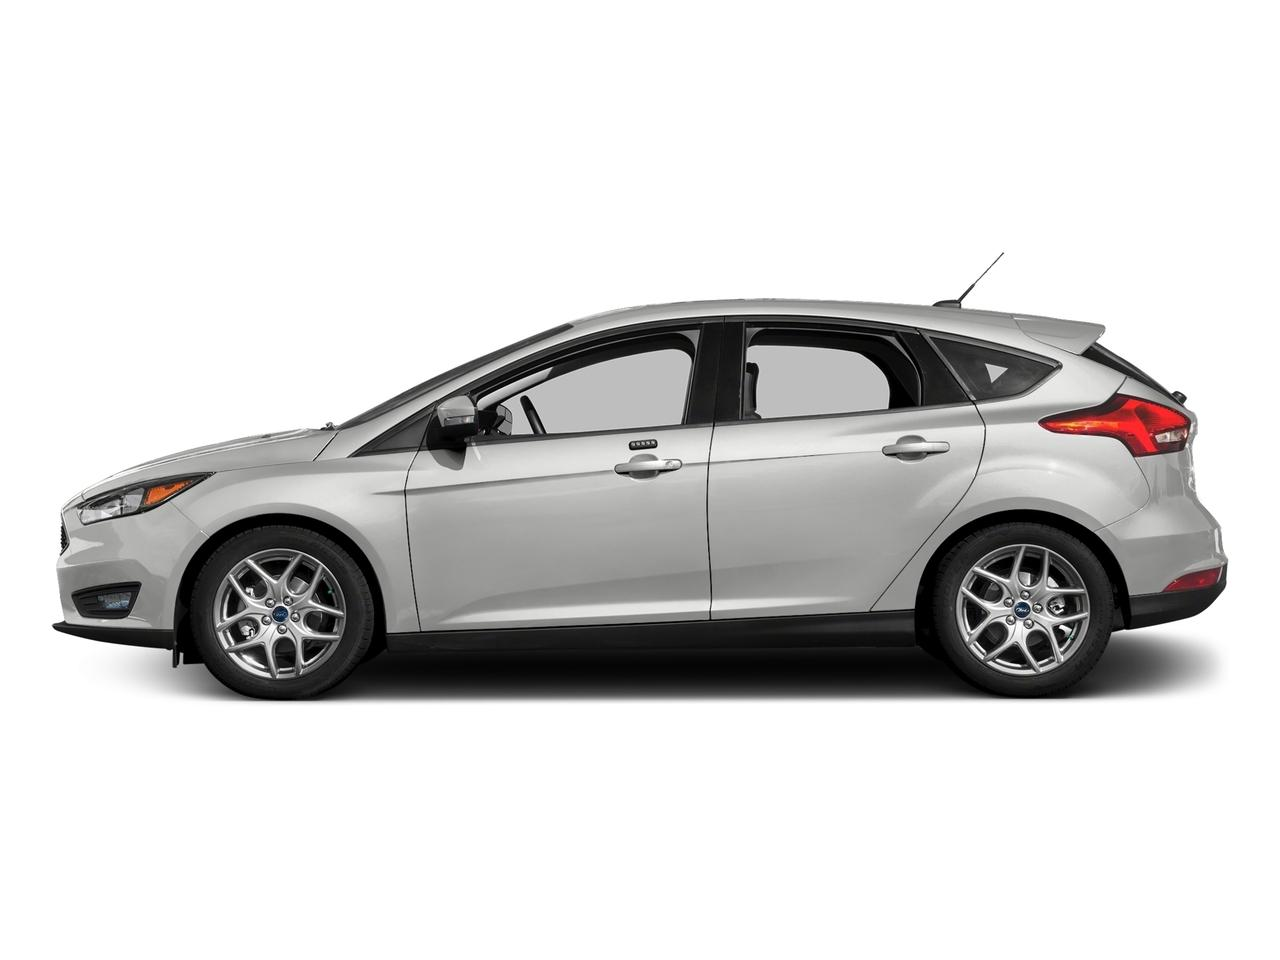 Used 2017 Ford Focus SEL with VIN 1FADP3M20HL225609 for sale in Brooklyn Center, Minnesota